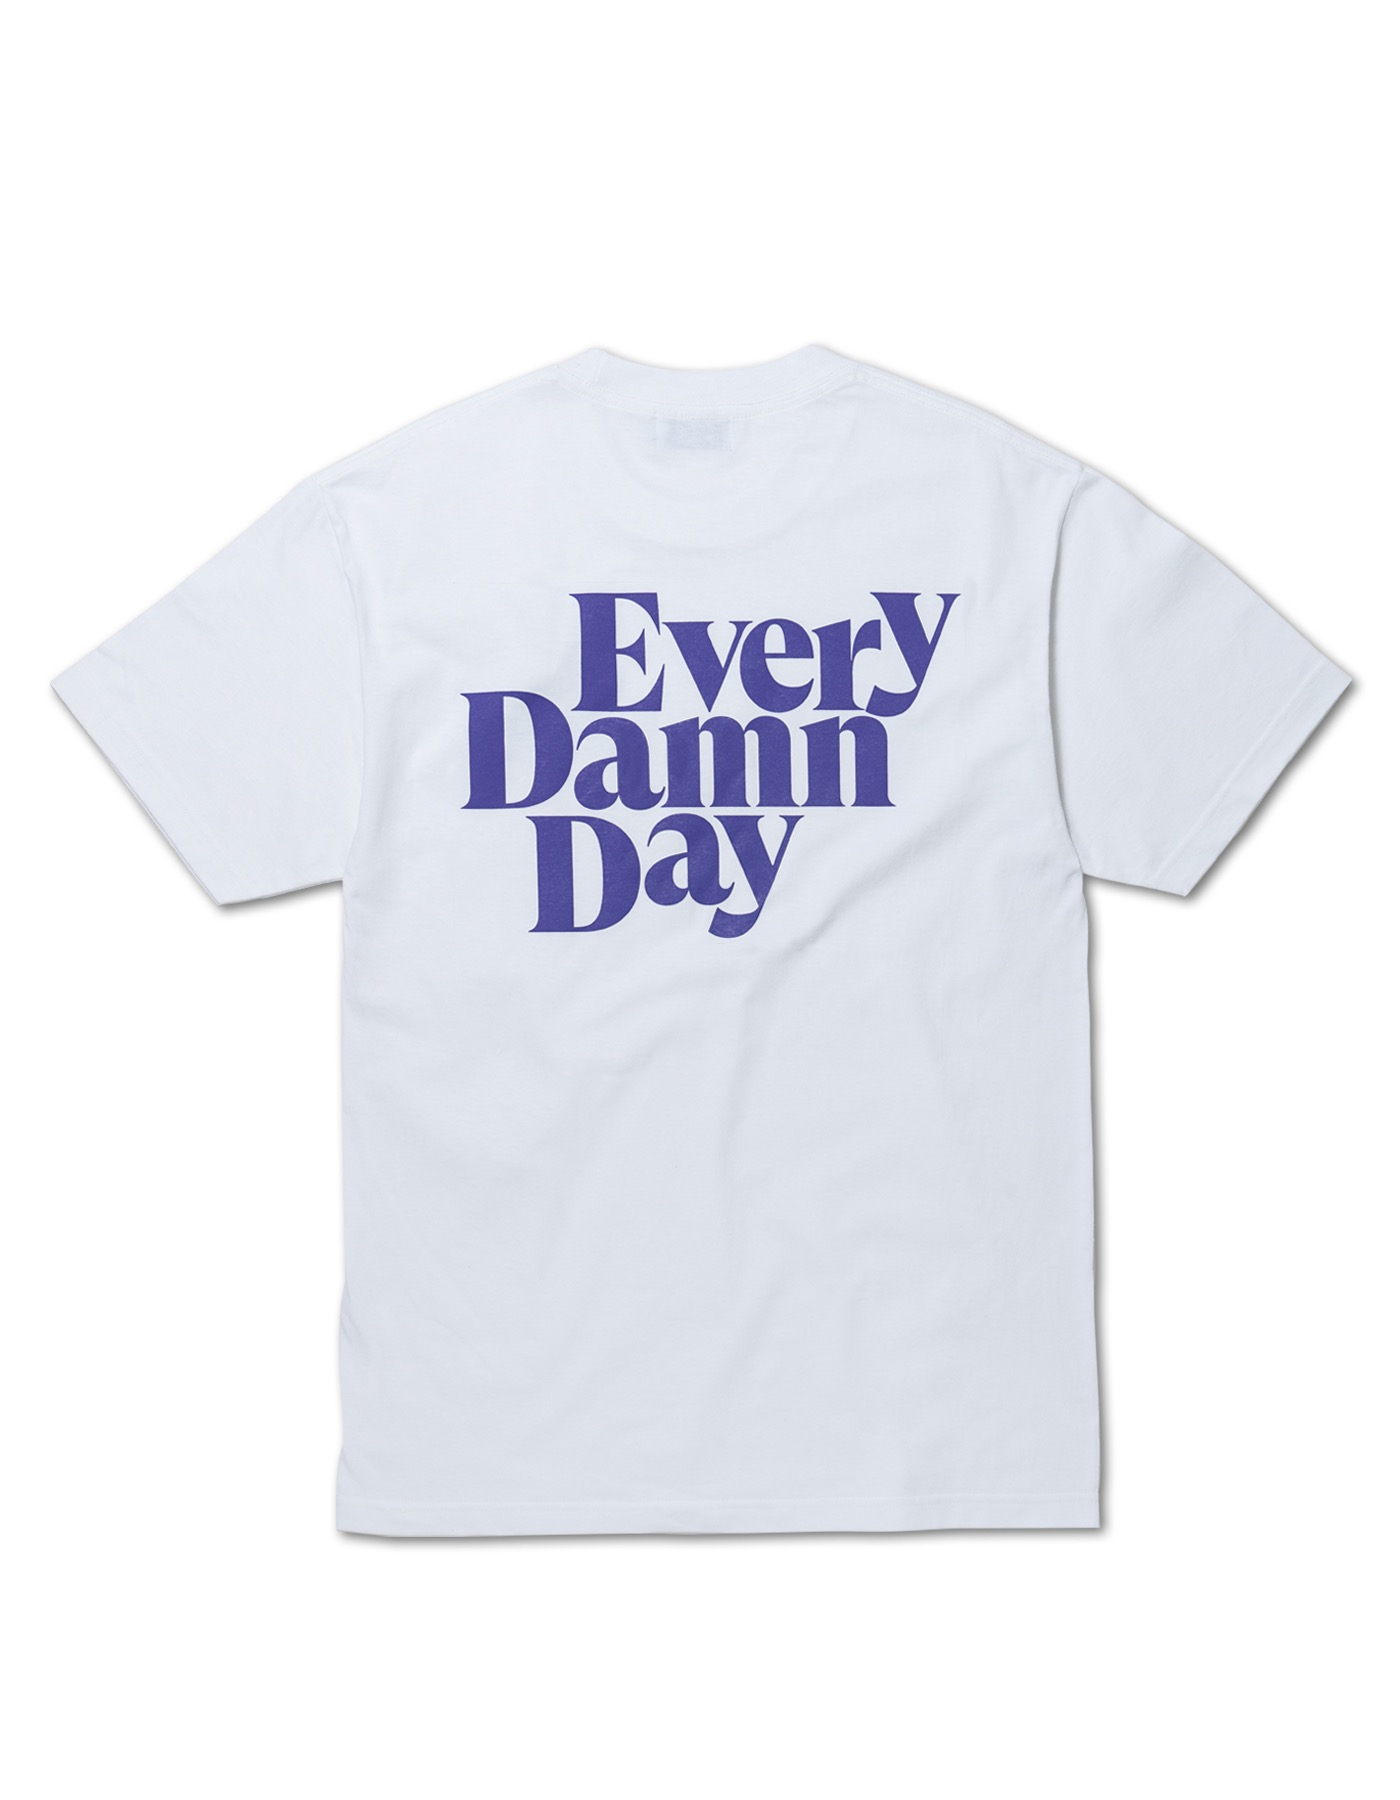 Every Damn Day T-shirts - White/Purple